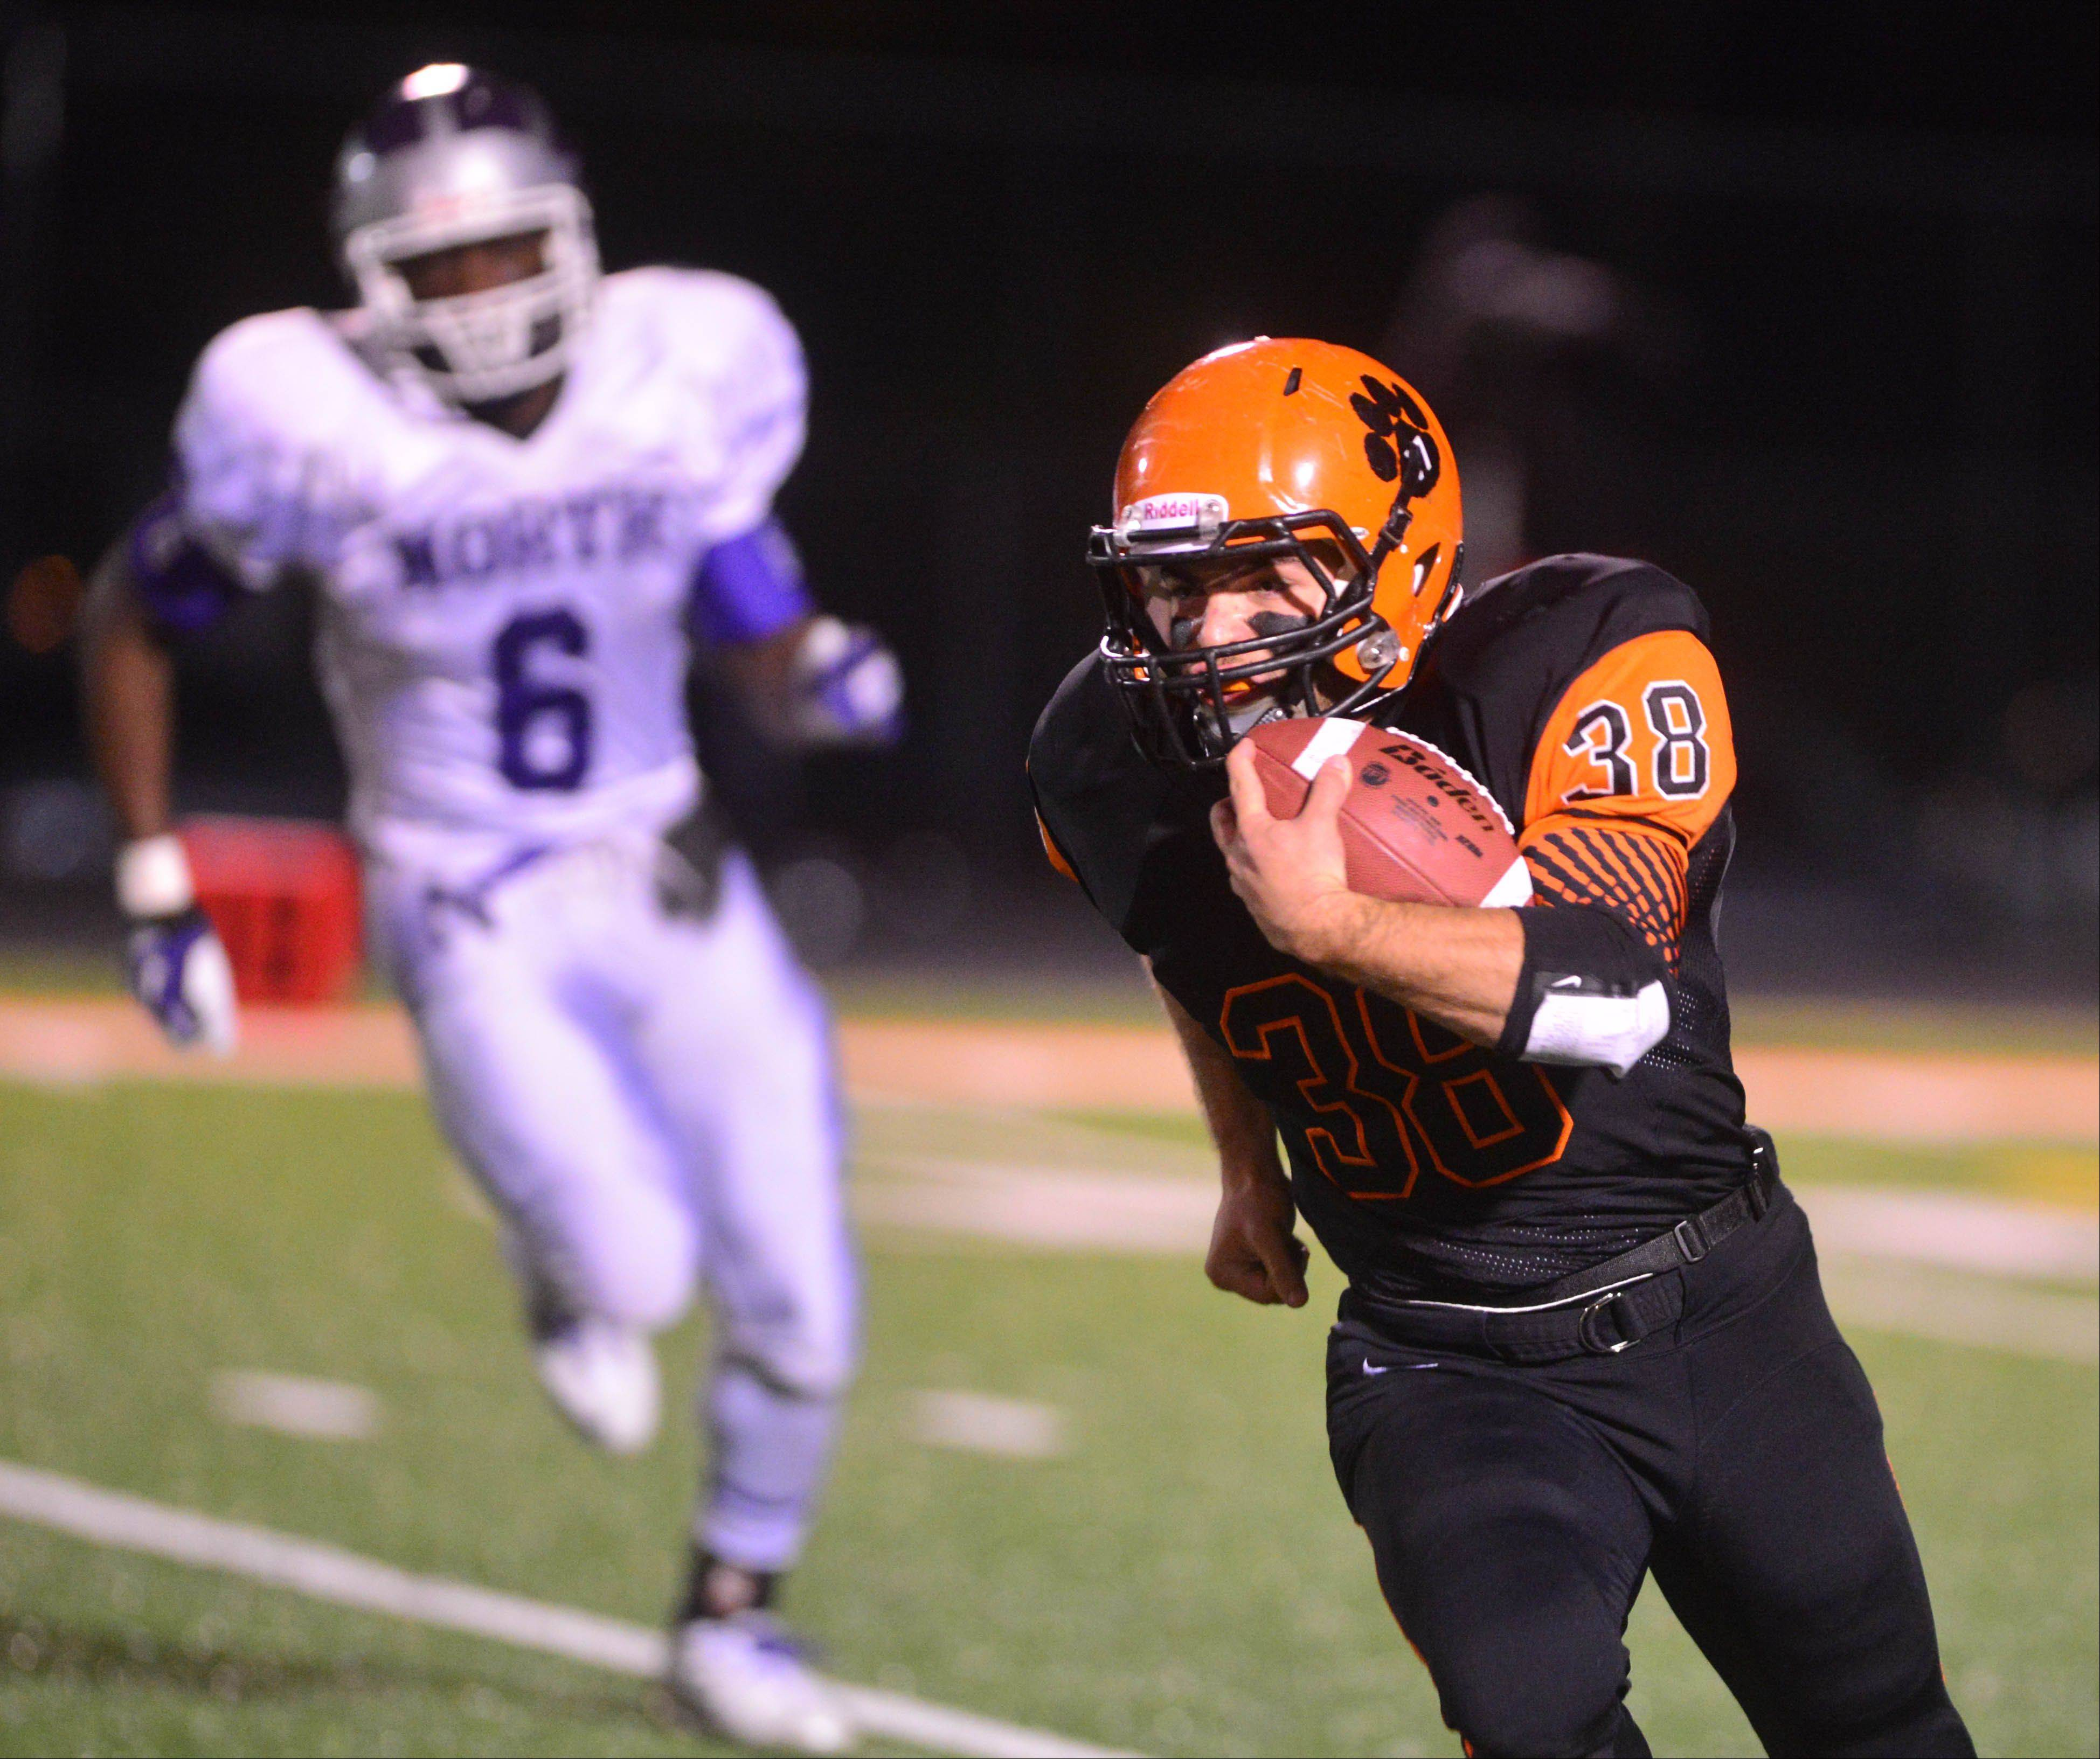 Zack Moberg of Wheaton Warrenville south runs the ball.